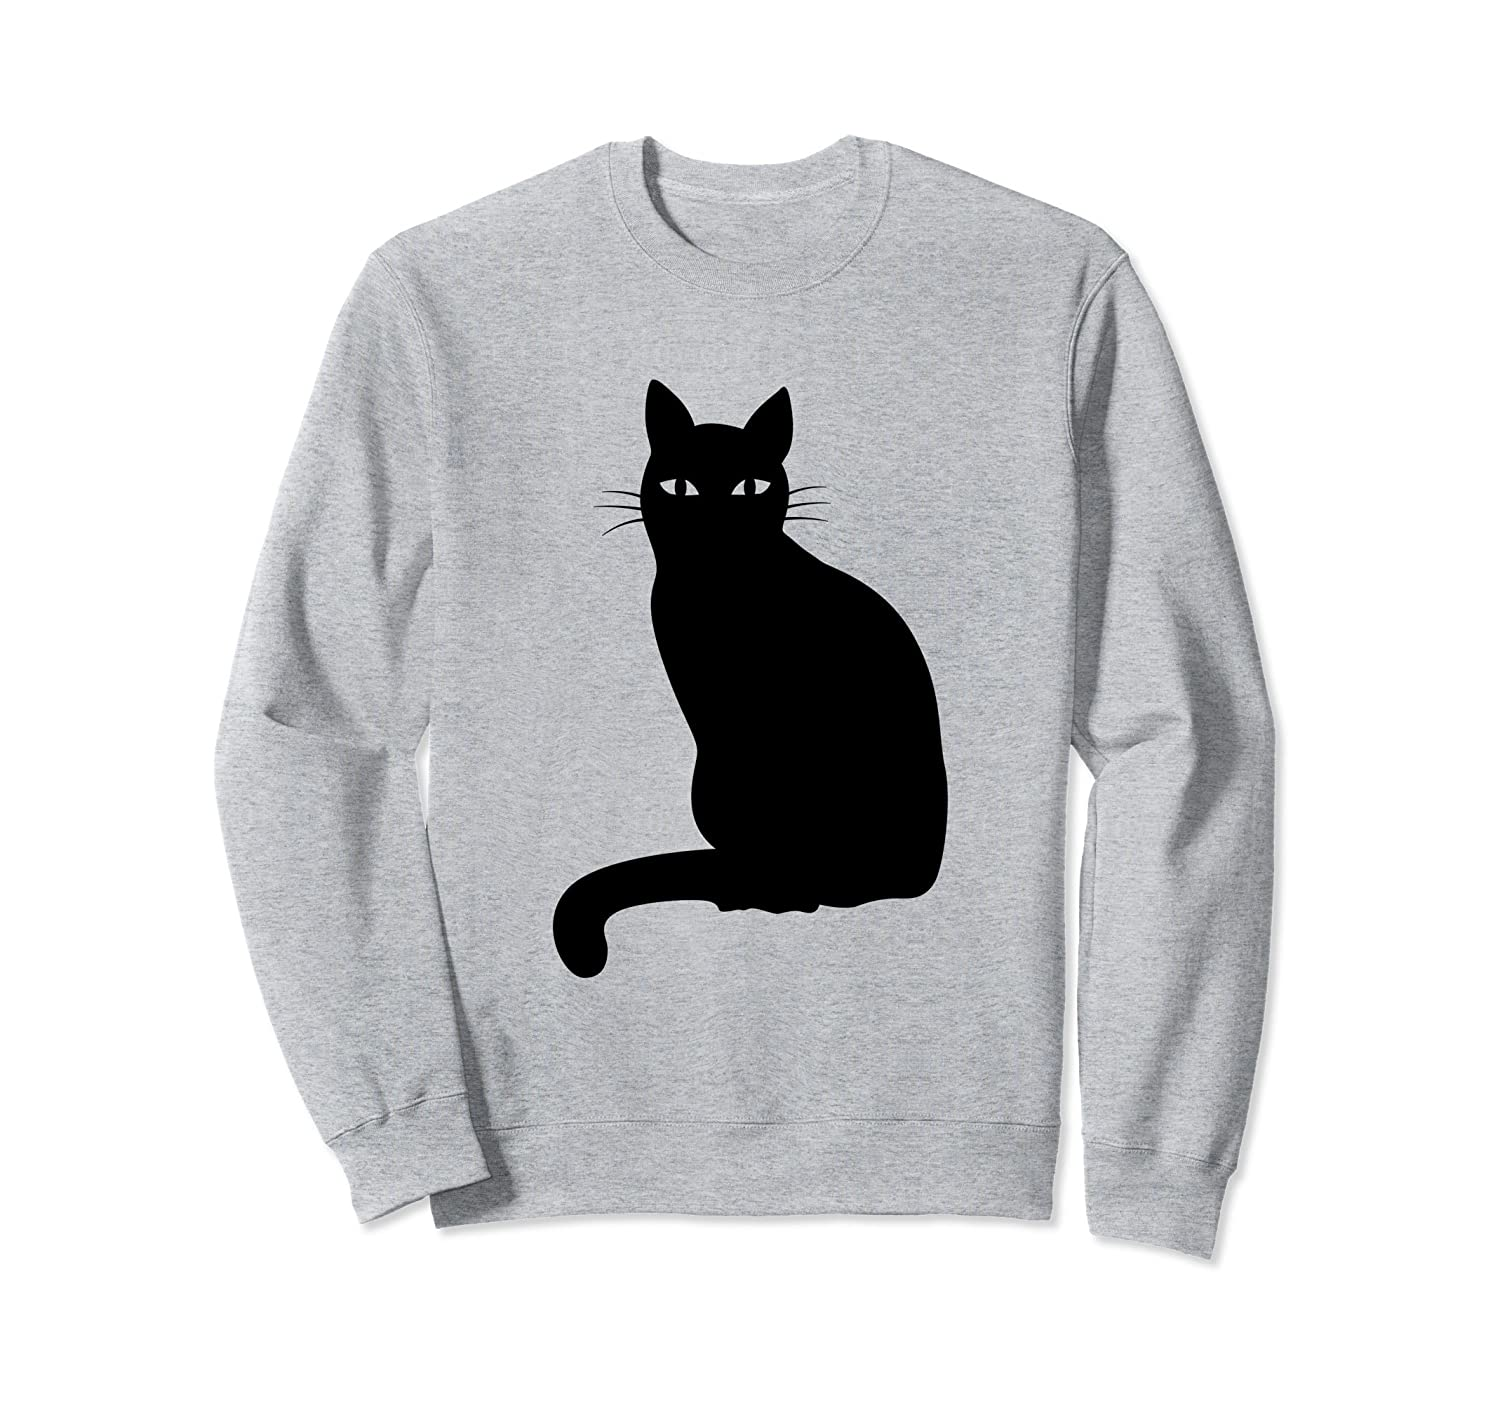 Black Cat Halloween Sweatshirt for Girls, Women, Men, Boys-mt